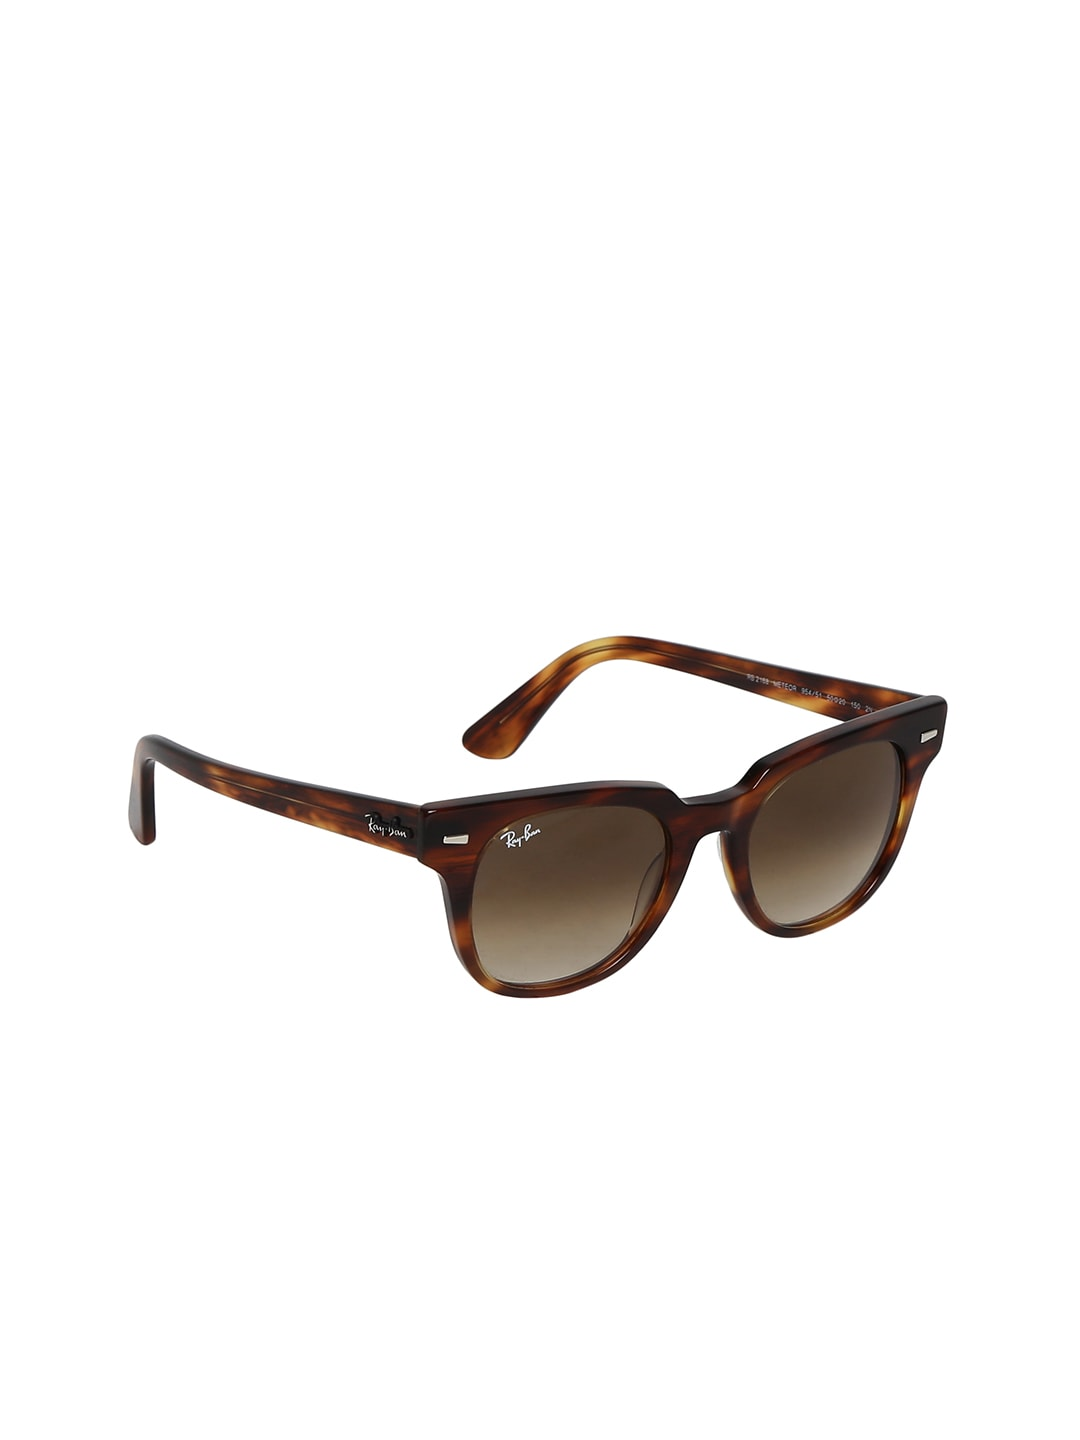 85ed7e46102e4 Ray Ban Brown Sunglasses - Buy Ray Ban Brown Sunglasses online in India